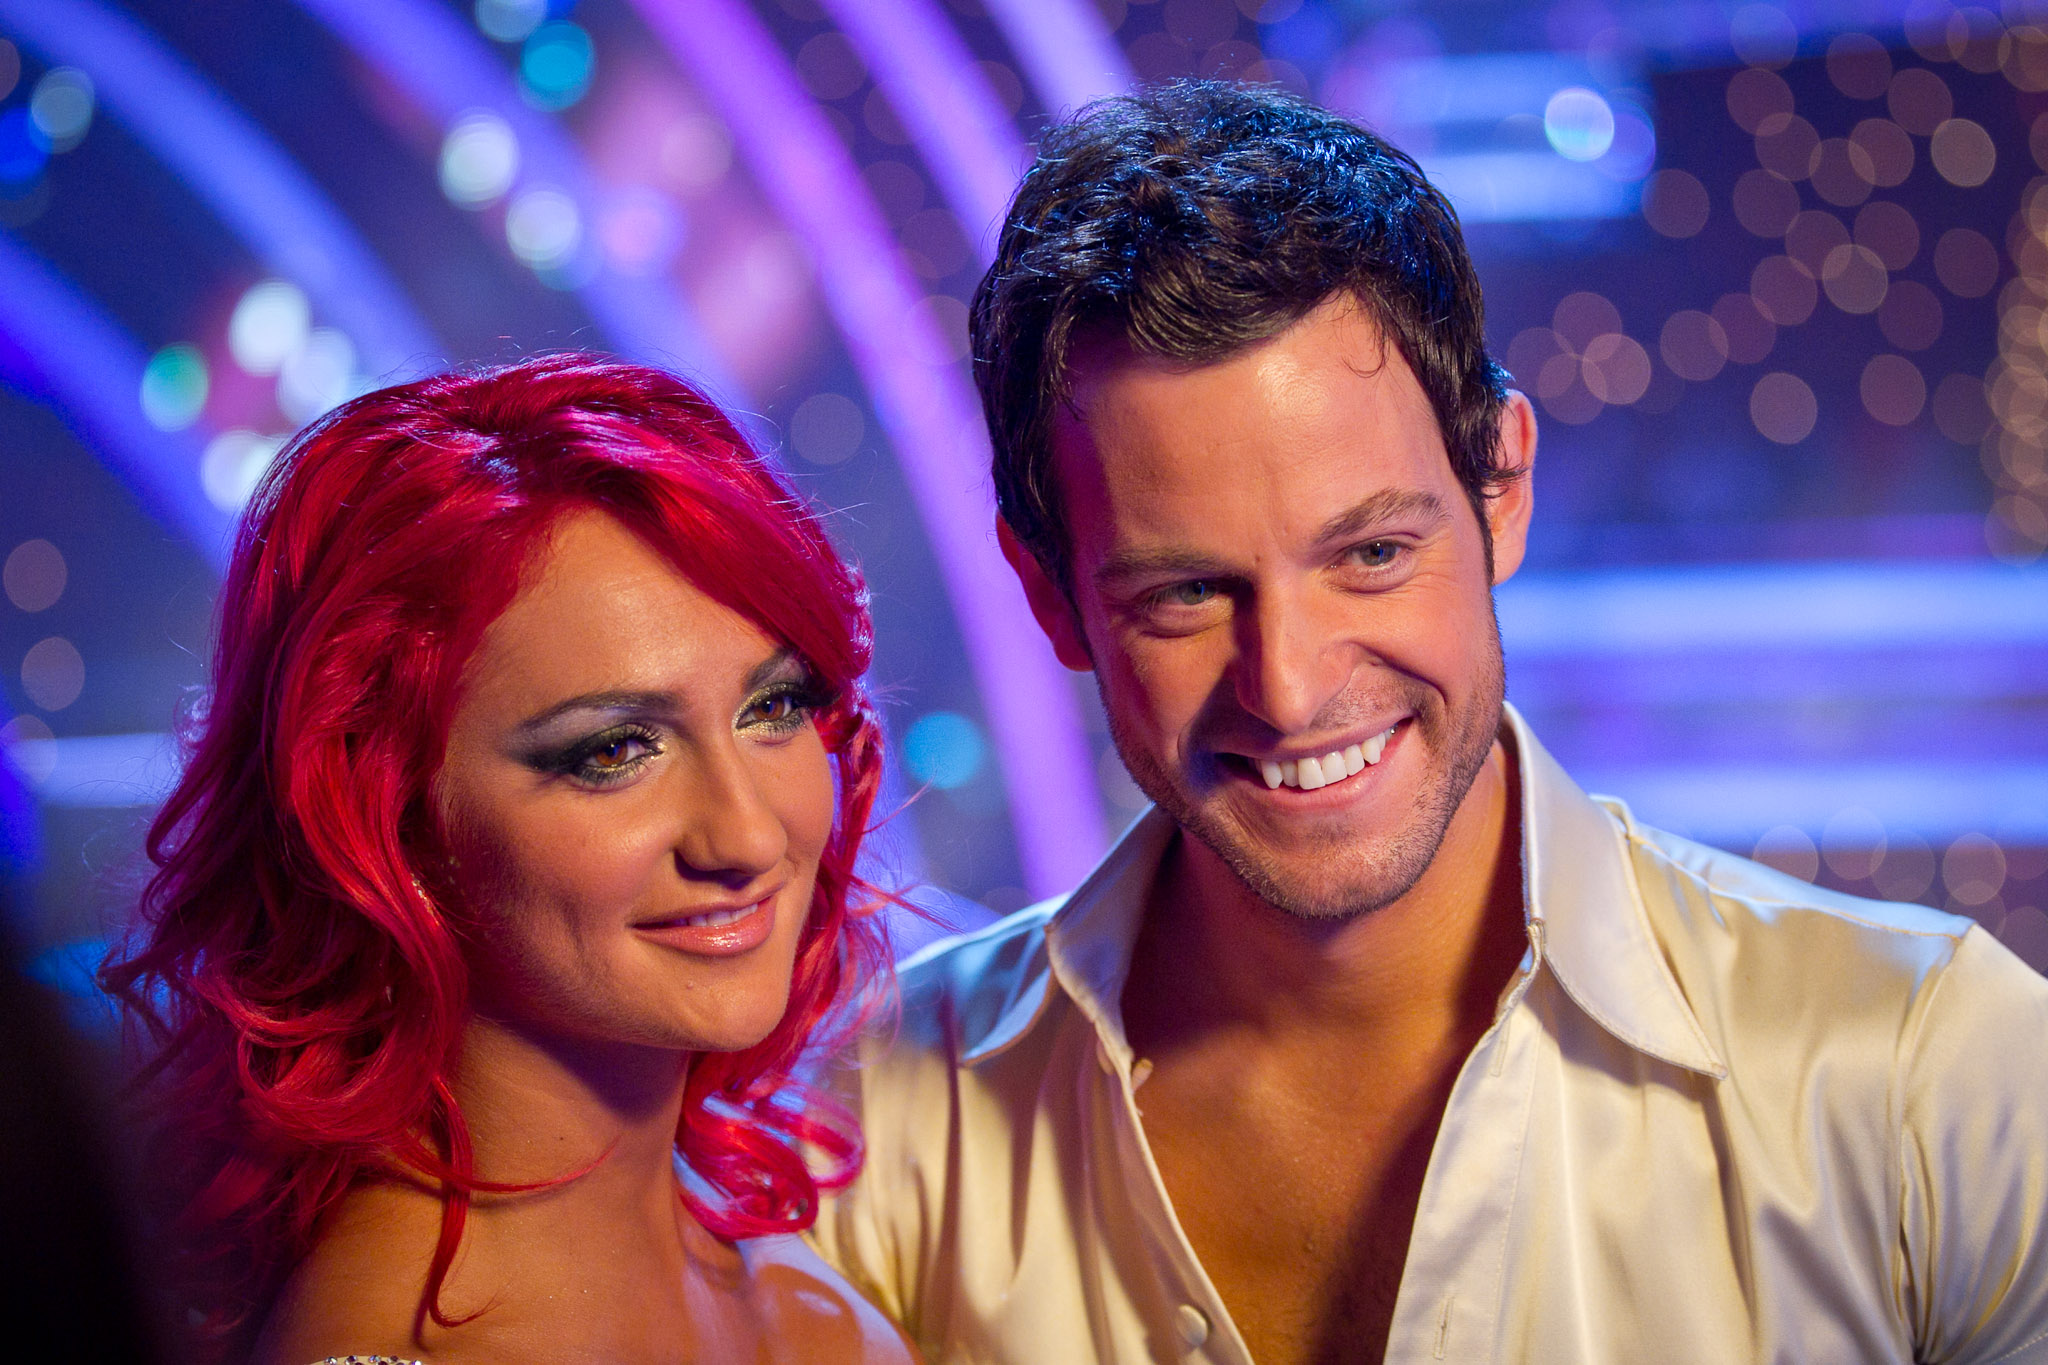 Strictly News Brings You Photographs From The Live Semi